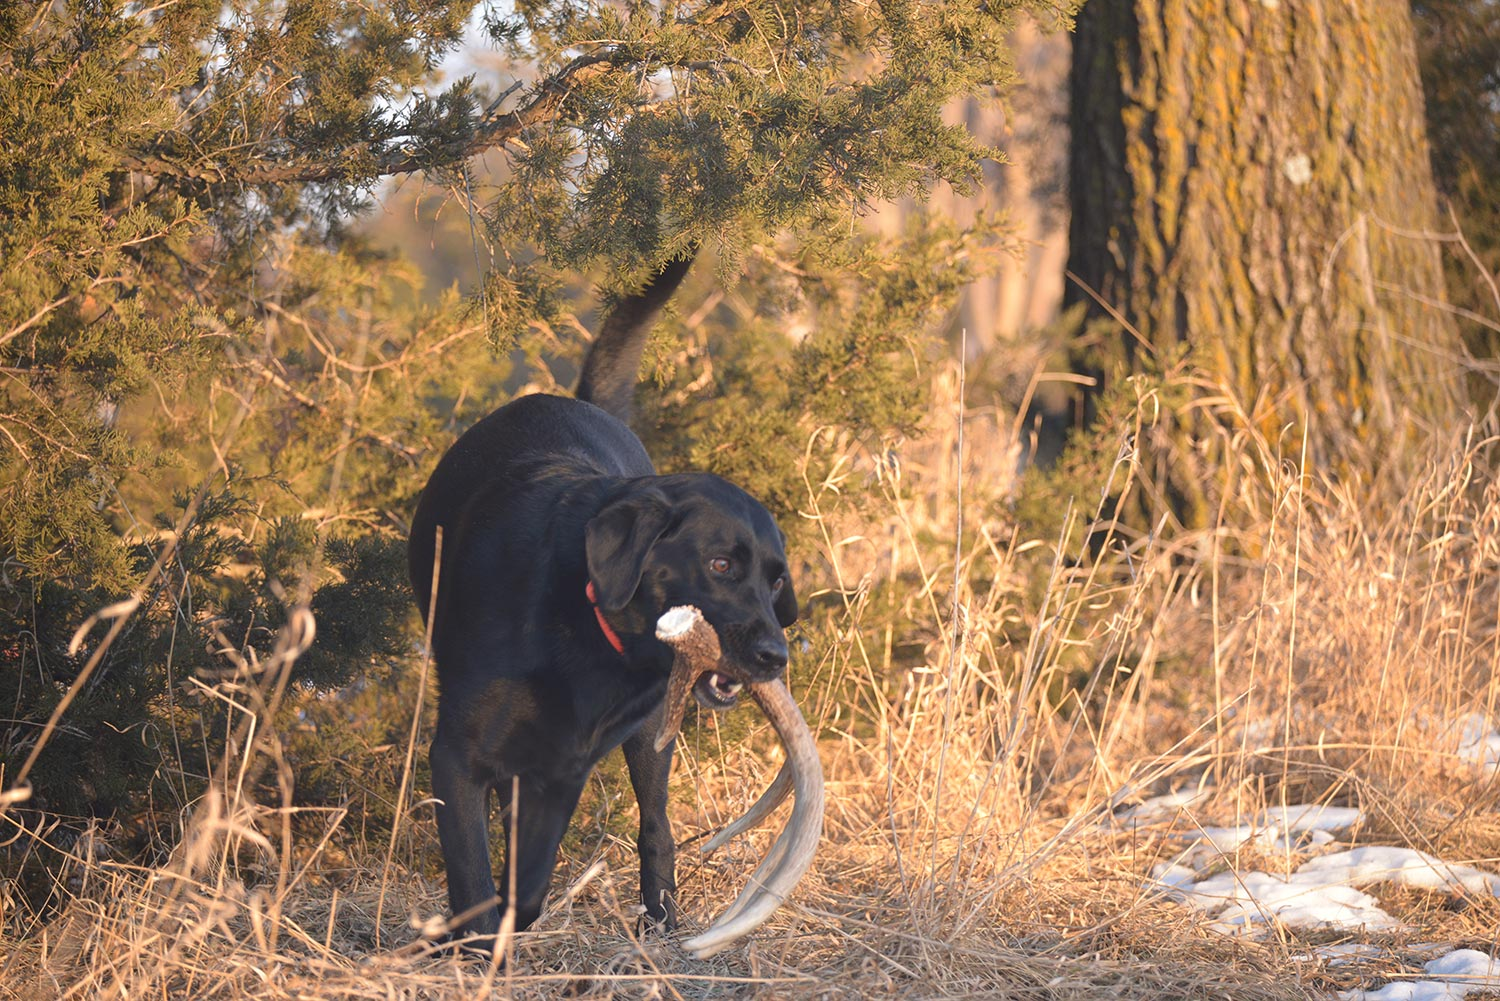 Hunting dog carrying antler in the woods.